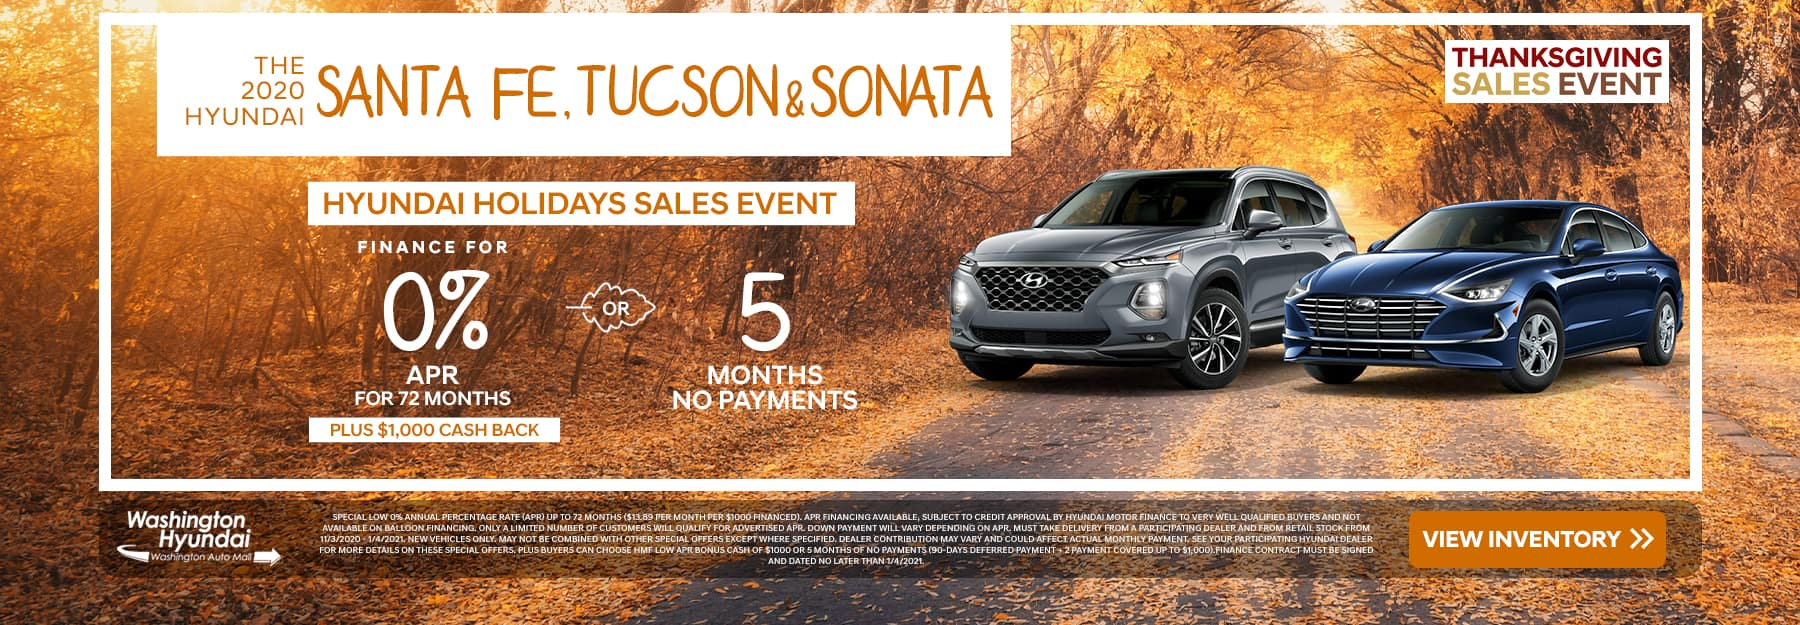 The 2020 Hyundai Santa Fe, Tucson, & Sonata, Hyundai Holidays Sales Event, Finance For 0% APR For 72 Months Plus $1,000 Cash Back Or 5 Months No Payments